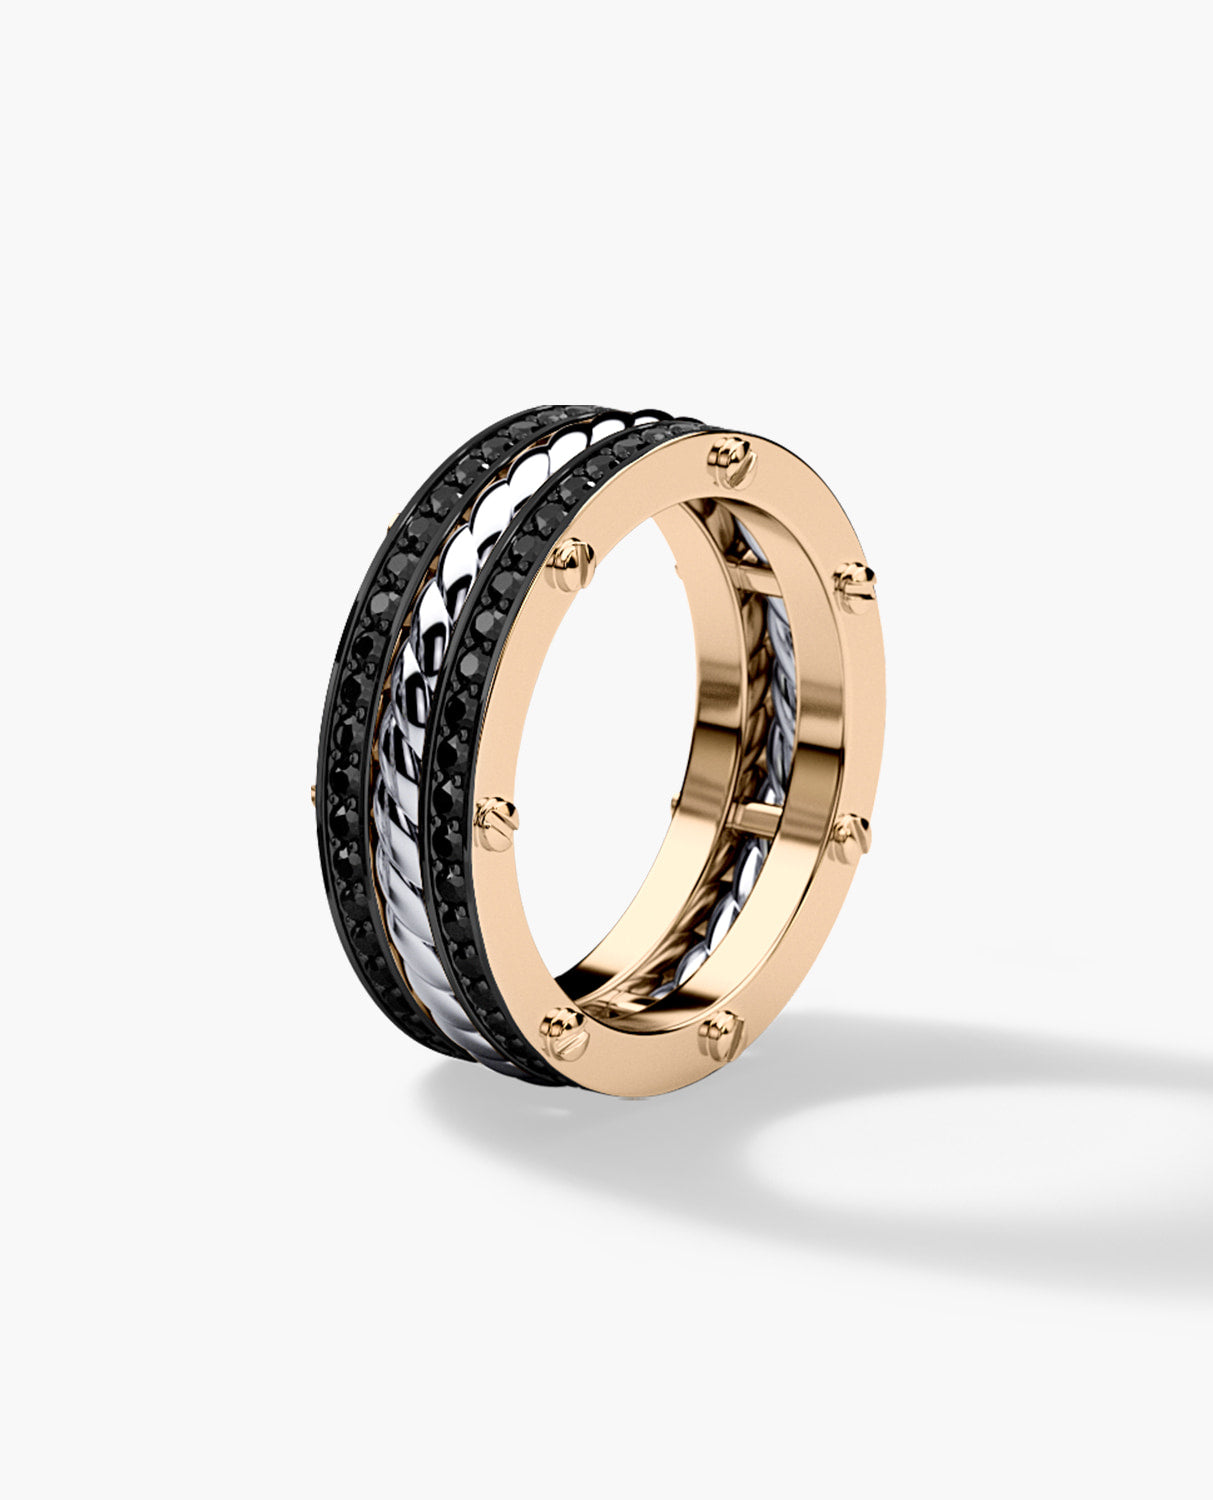 ROPES Two-Tone Gold Wedding Band with 0.70ct Black Diamonds - Ring 2